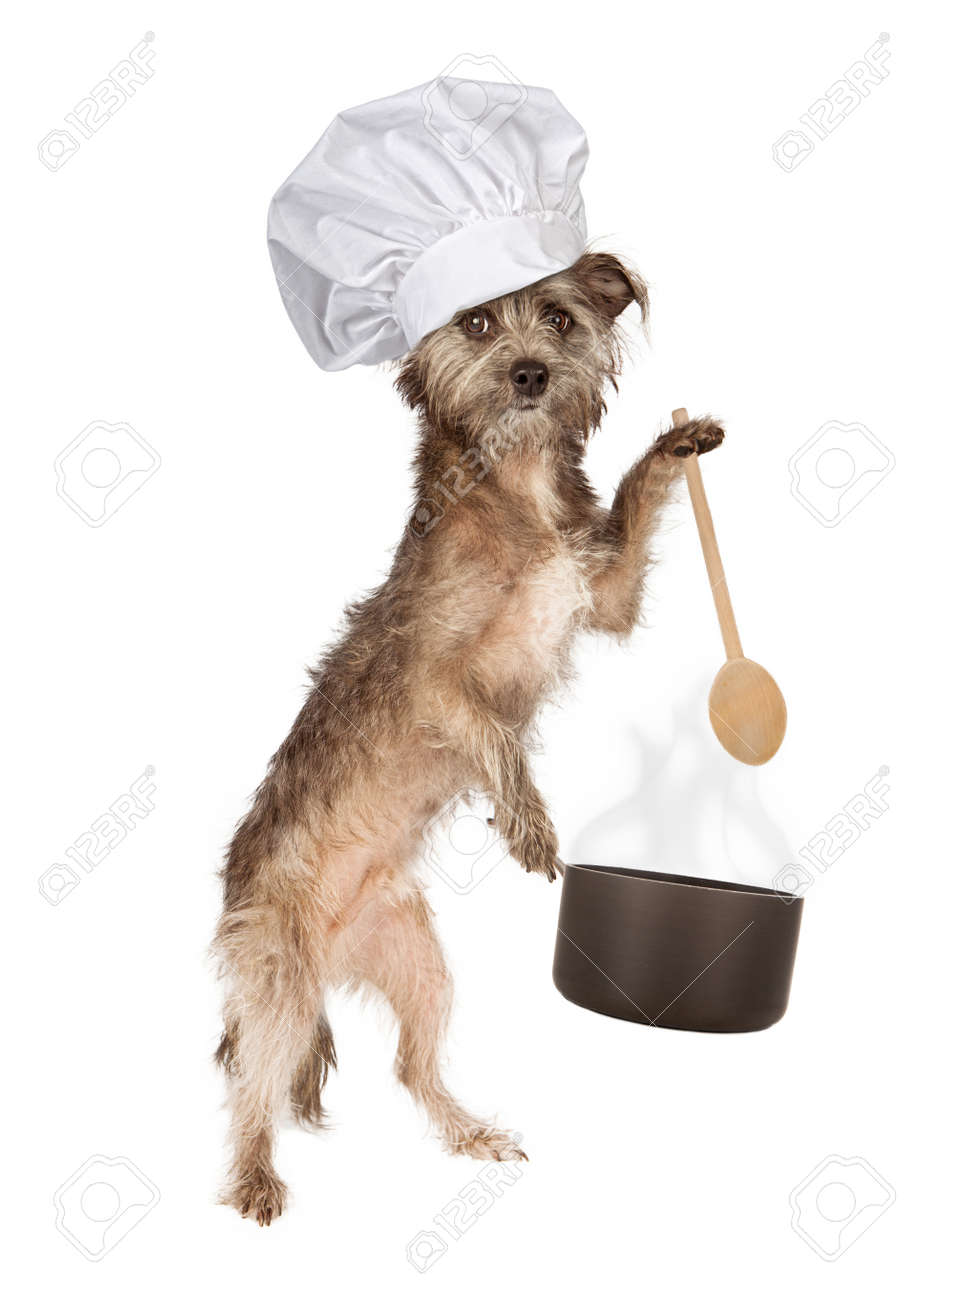 Must see Cairn Terrier Ball Adorable Dog - 27756189-a-cute-cairn-terrier-mixed-breed-dog-wearing-a-chef-hat-while-holding-a-cooking-pot-and-wooden-spoon  2018_57436  .jpg